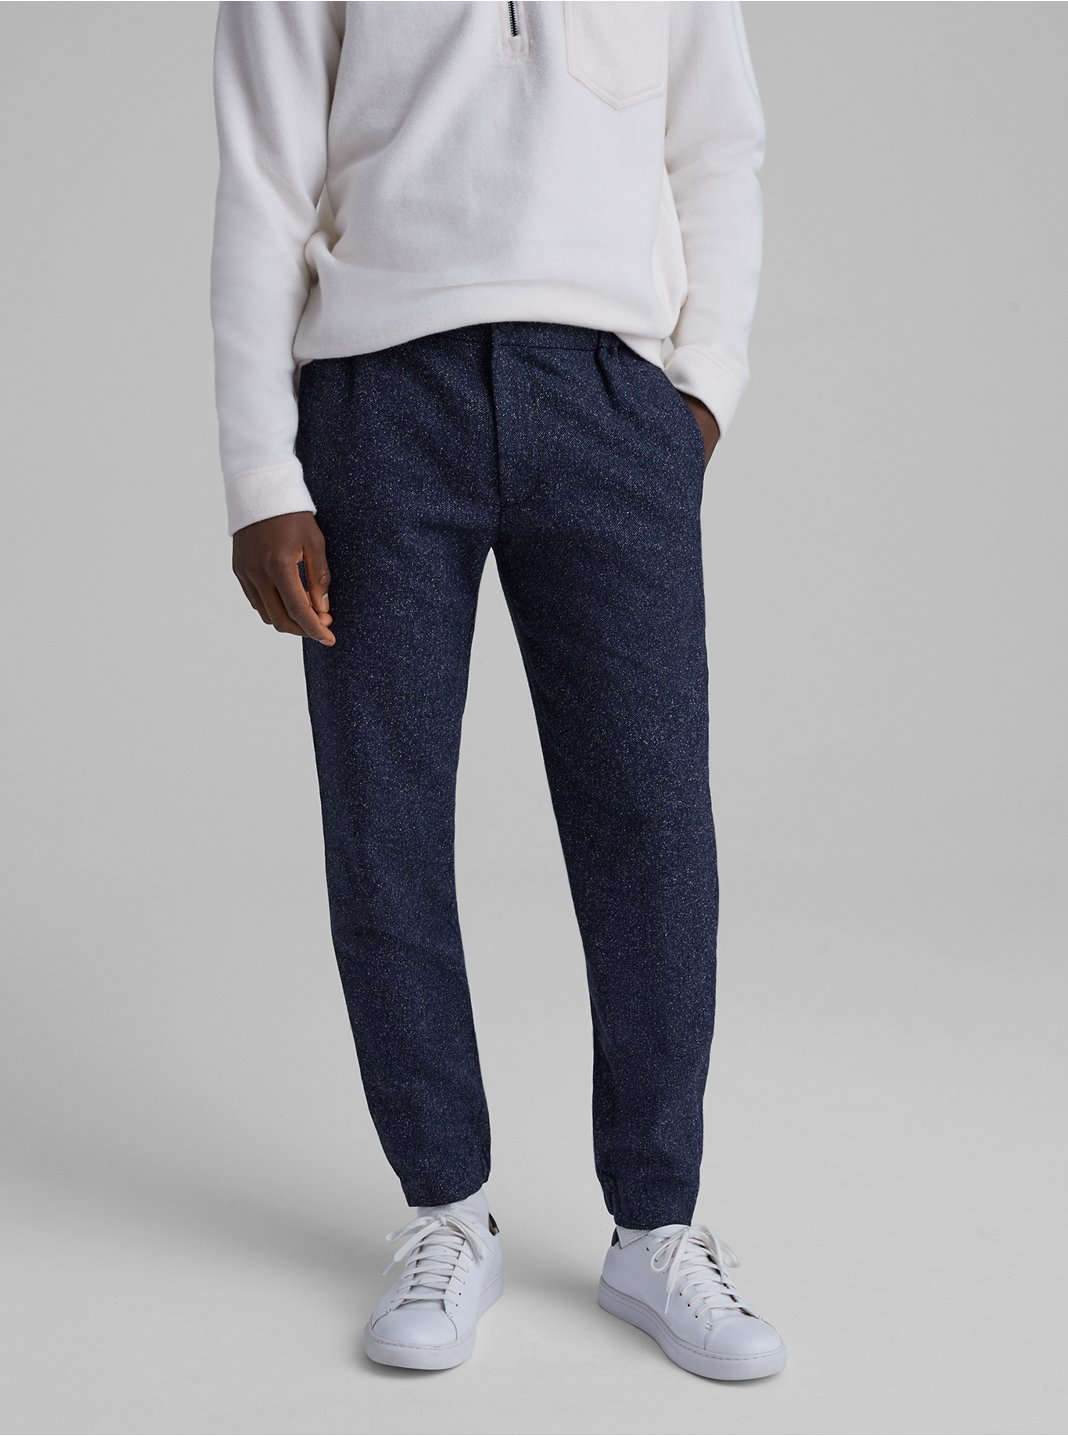 Lex Twill Donegal Trouser